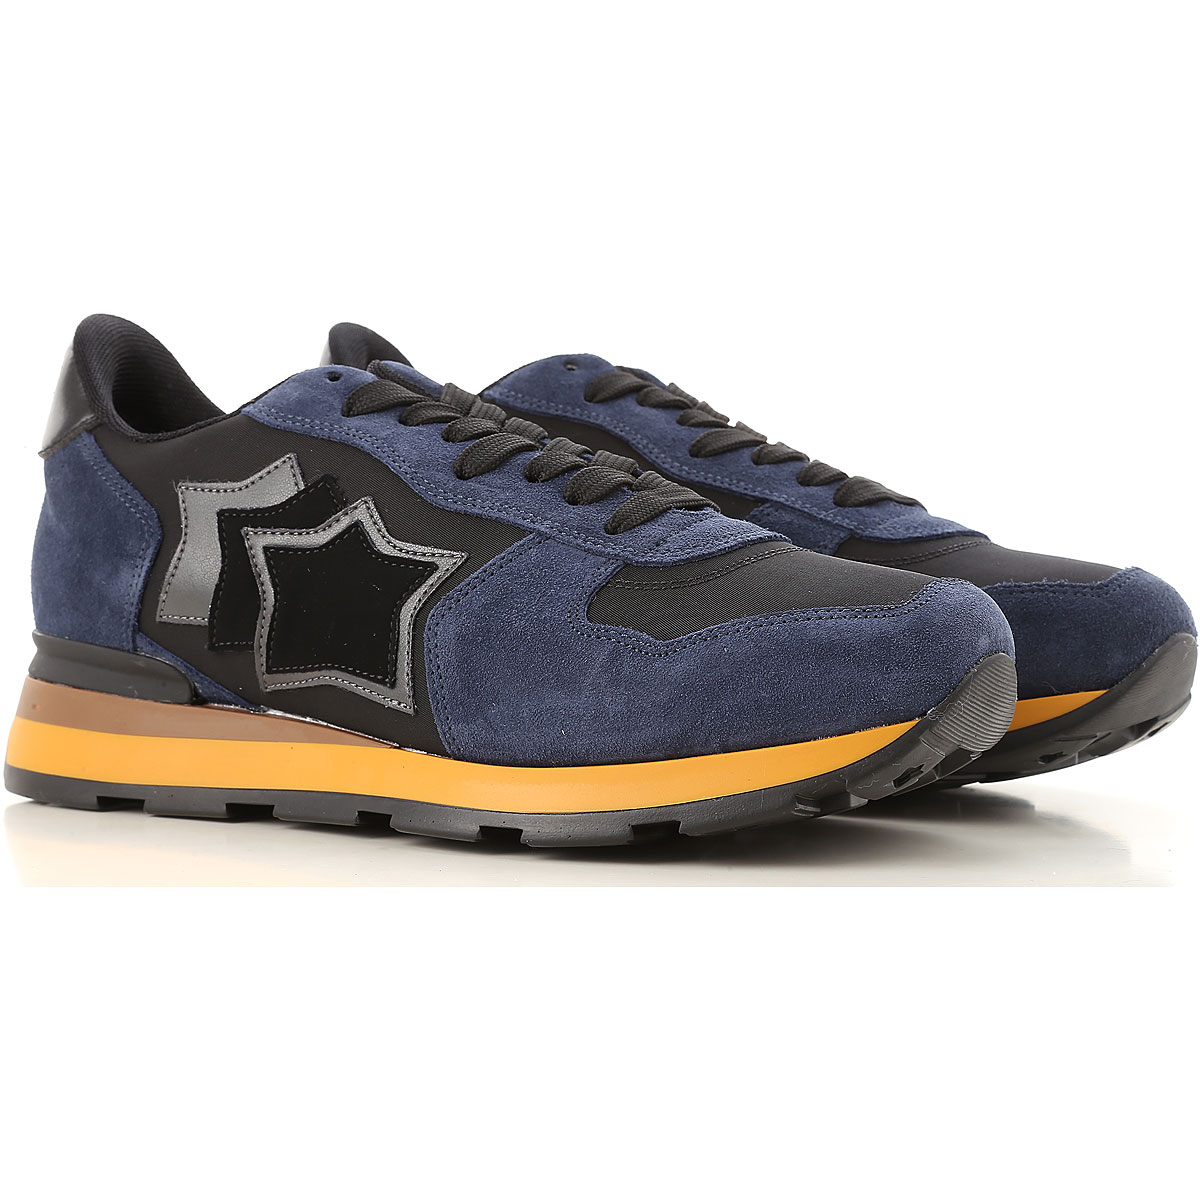 Image of Atlantic Stars Sneakers for Men, Blue, Suede leather, 2017, 10 10.5 7.5 8